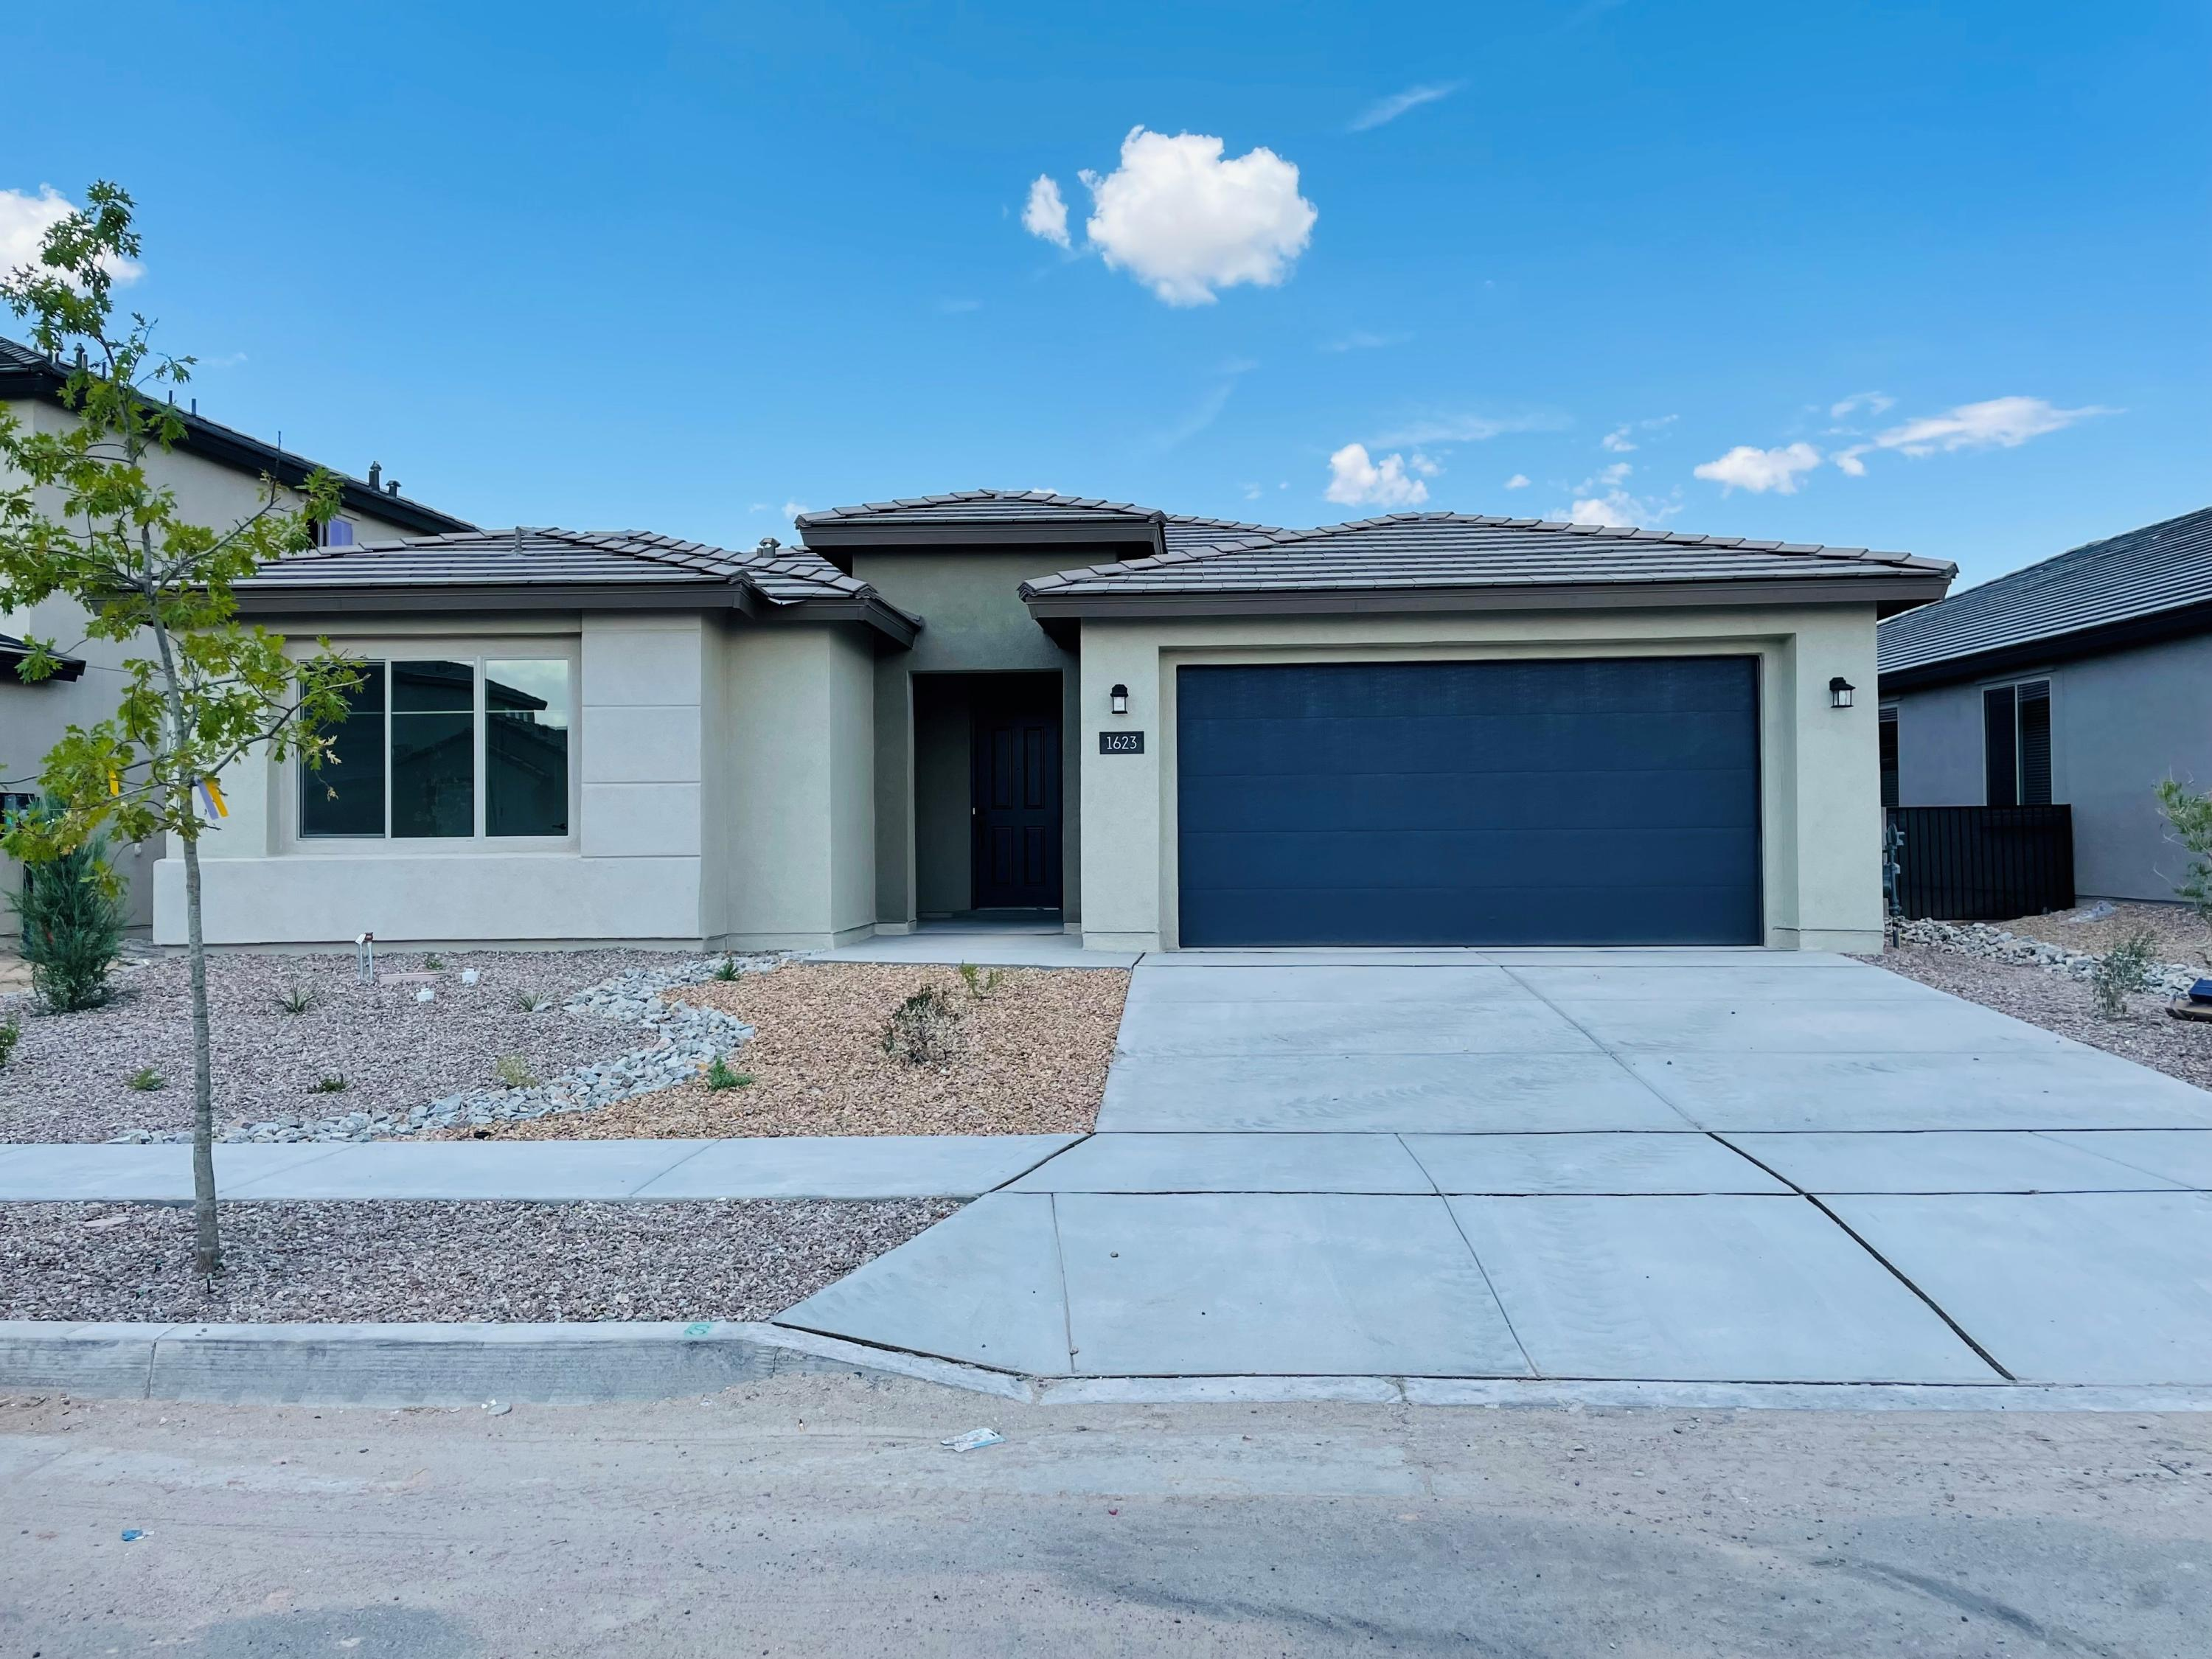 Ready to move in! New Construction built by Pulte Homes (Parklane Model) Located in a beautiful gated community w/ amenities. 3 bedroom 2 Full bathrooms and 1 - 1/2 bath! Possible 3 car garage. Open kitchen for family gatherings. Quick access to I-40. Amazon nearby.